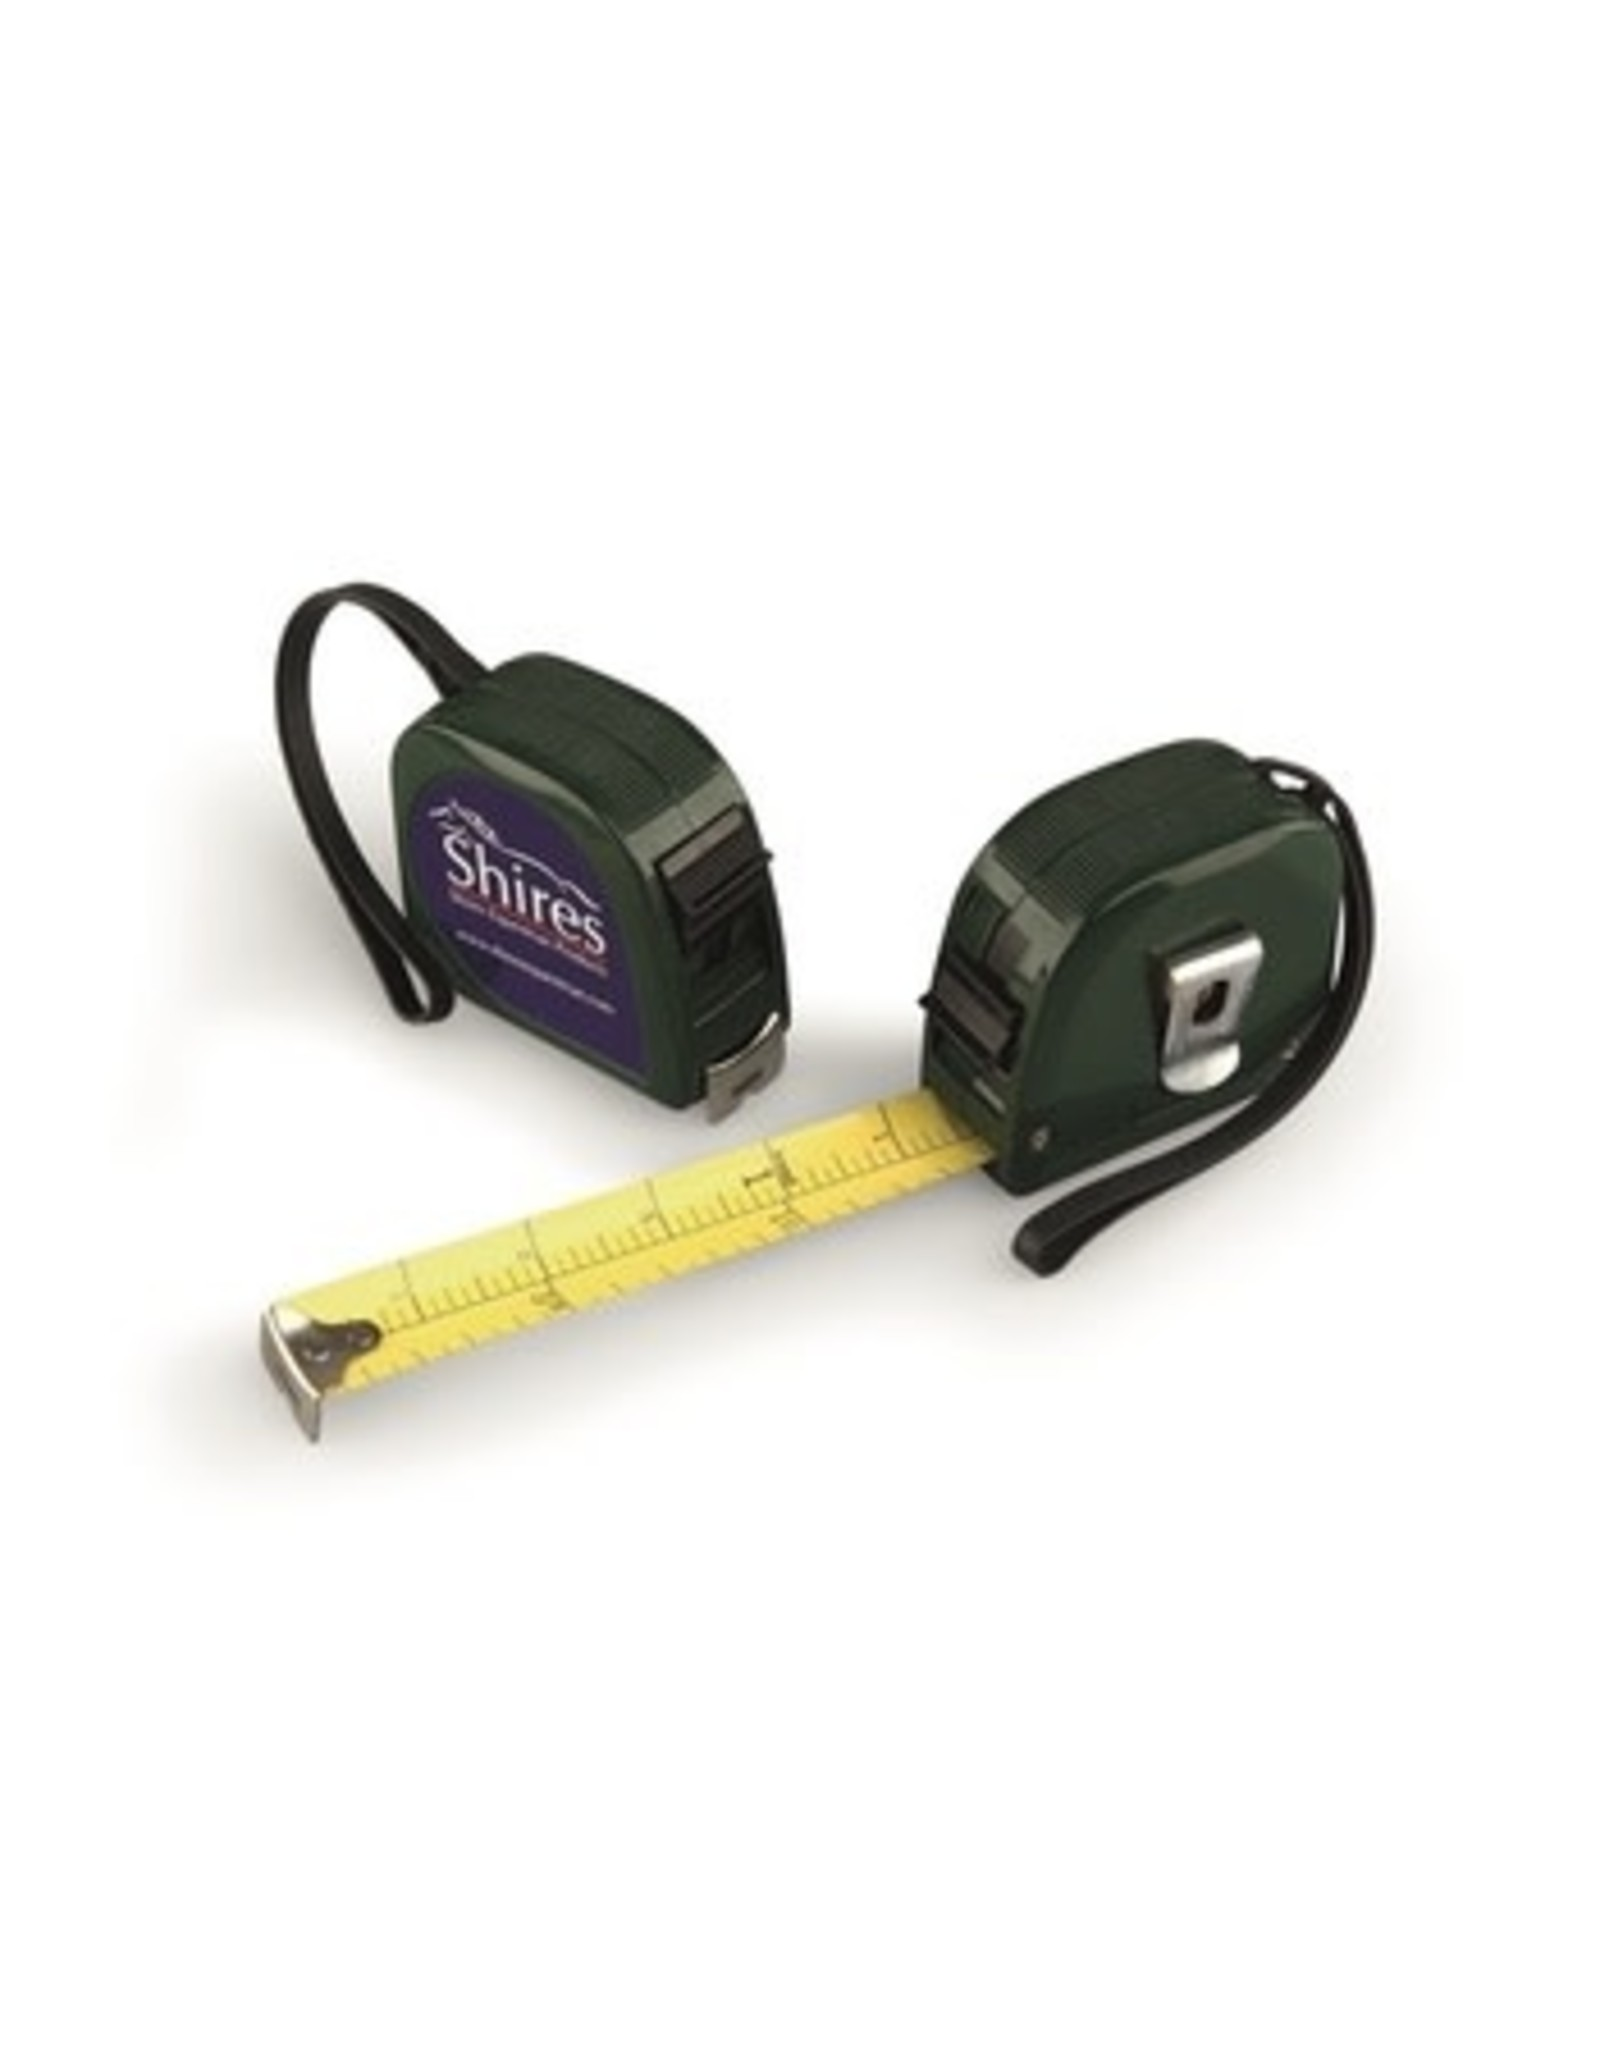 Shires Horse Measuring Tape